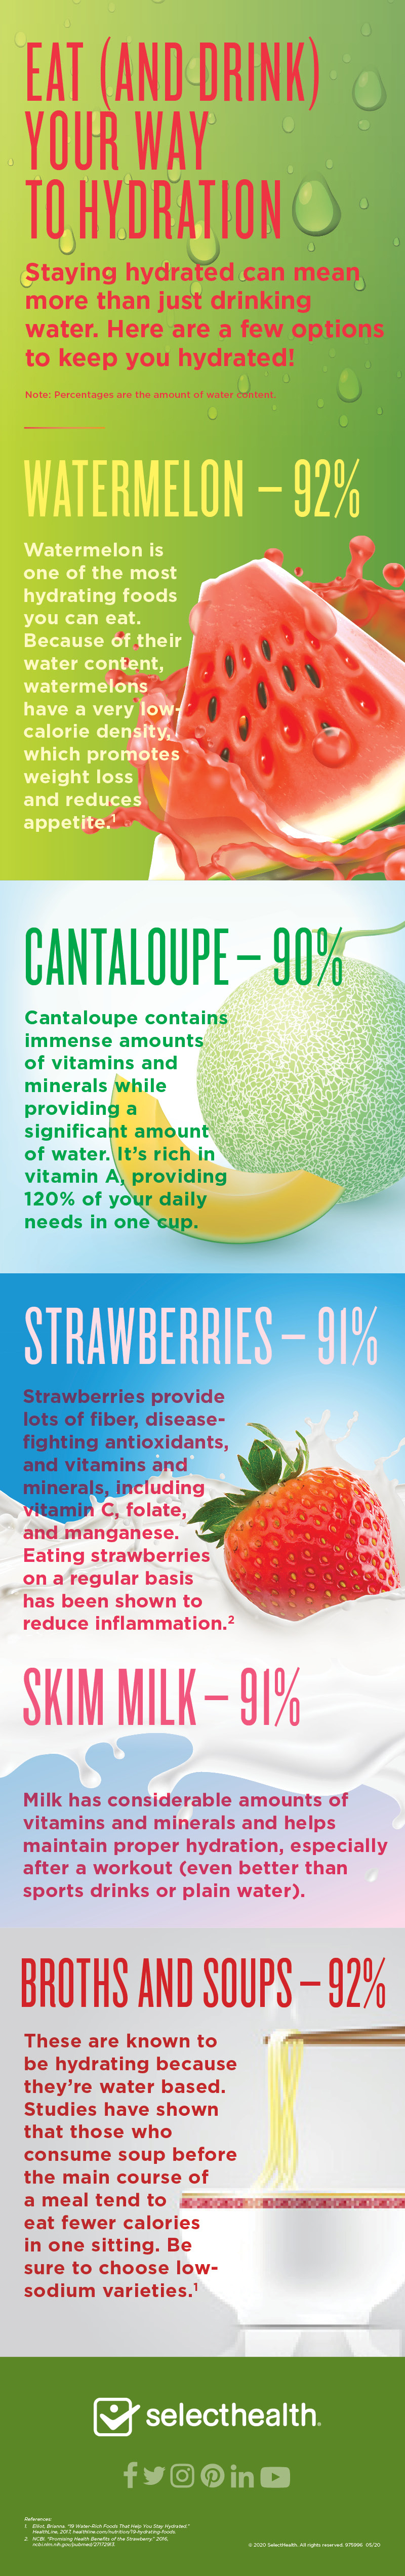 Infographic illustrating how you can eat and drink foods to help you stay hydrated besides water